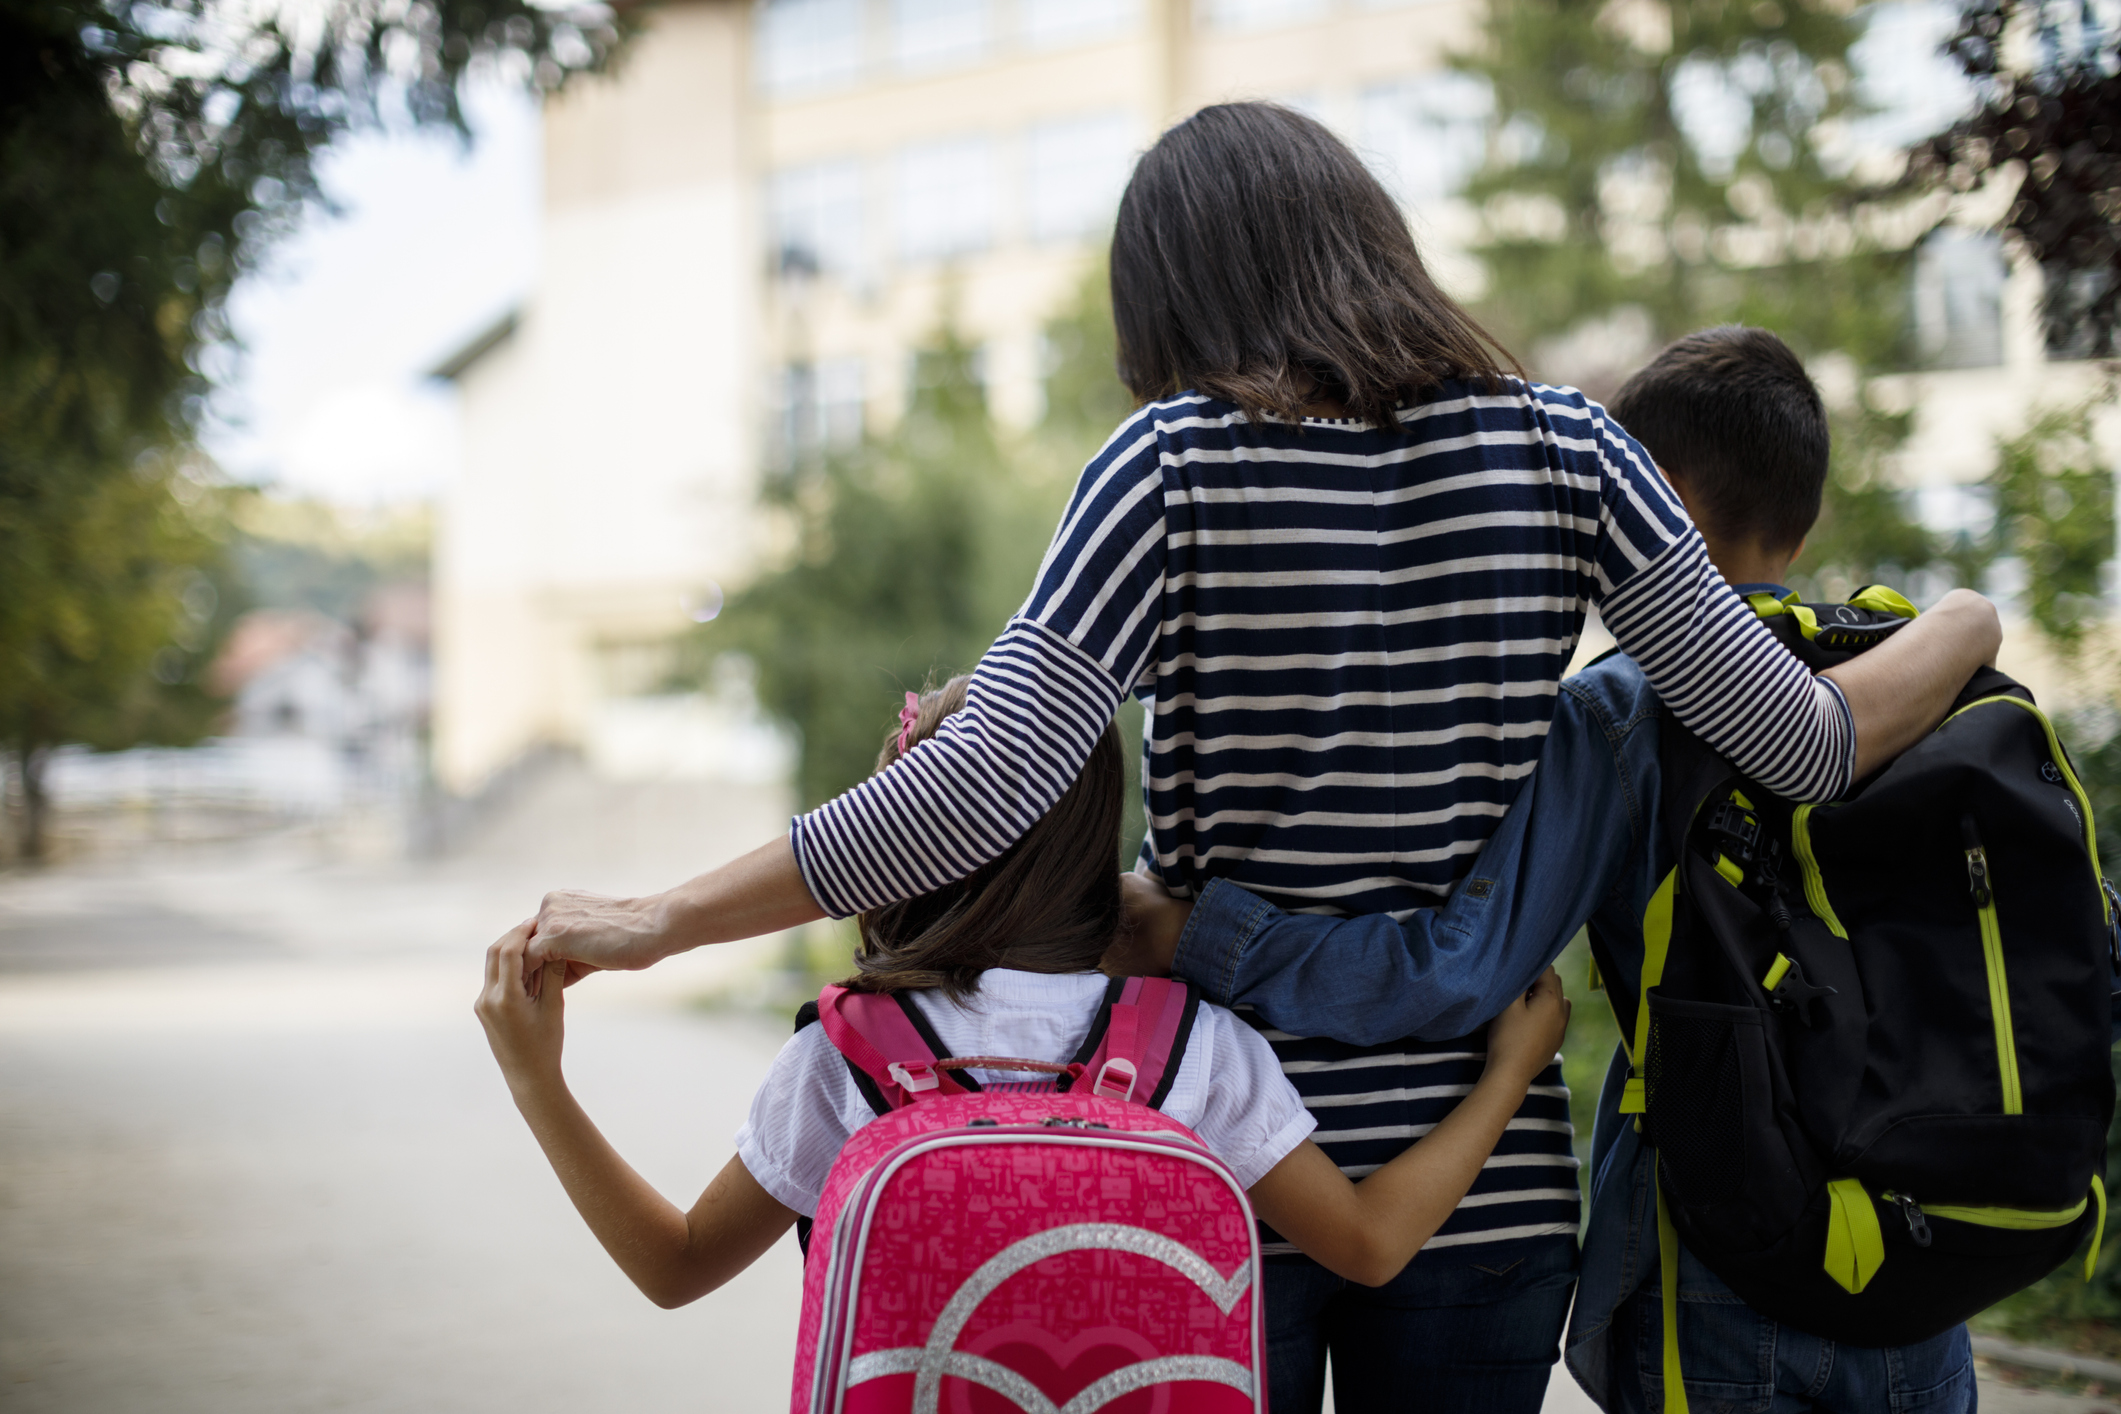 Mother walking with both of her children arm in arm.